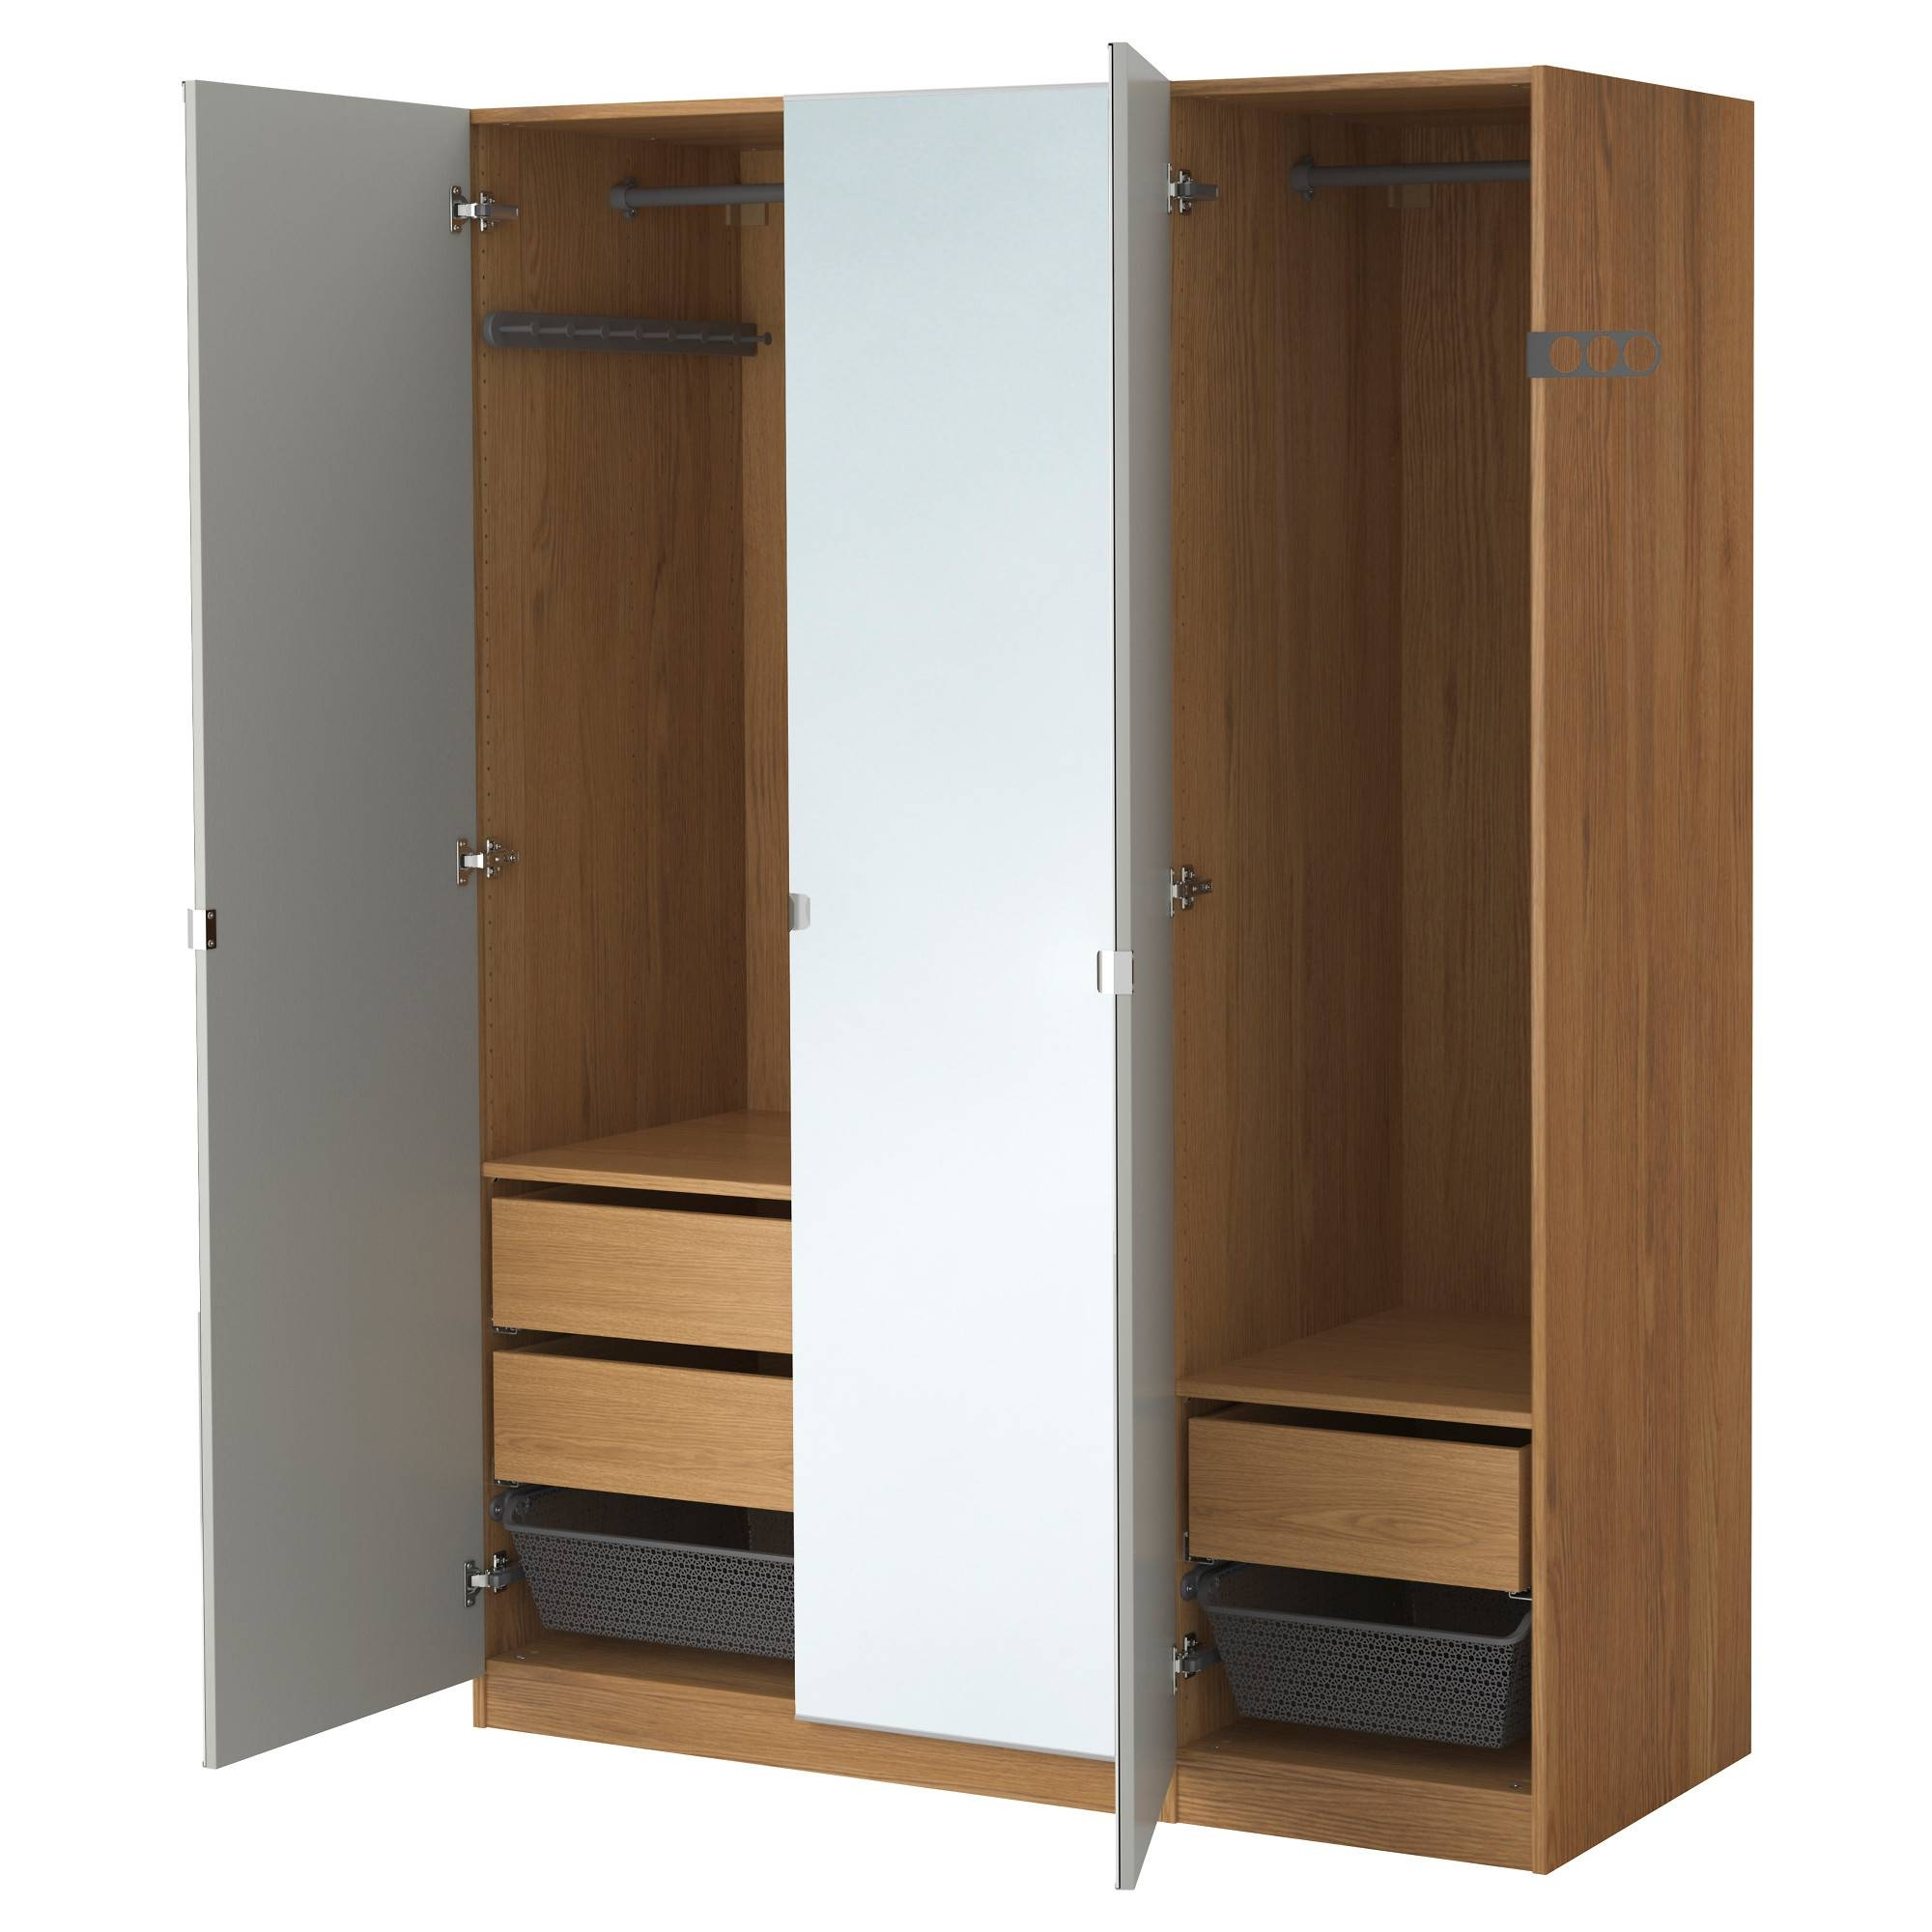 Wardrobes | Ikea with regard to Double Wardrobes With Mirror (Image 14 of 15)